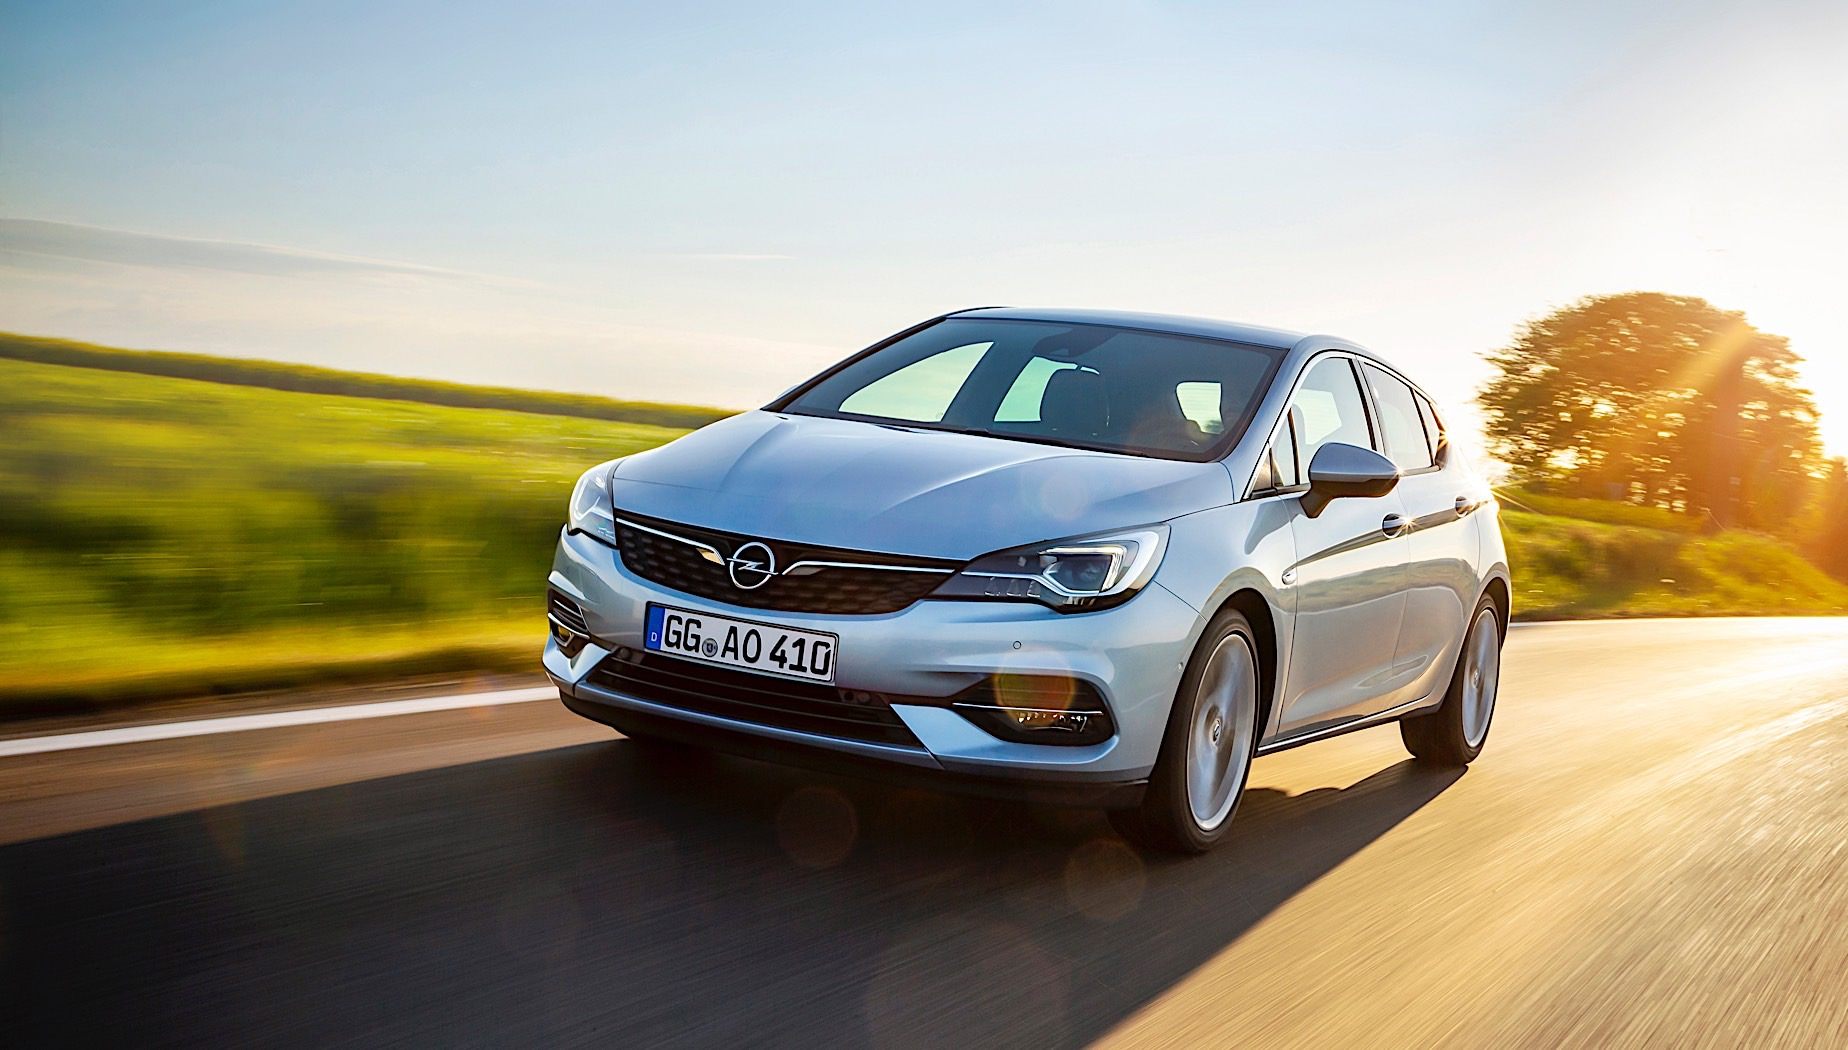 2020 Opel Astra Sedan, Release Date, Price, And Design >> 2020 Opel Astra Comes To The World With Better Aerodynamics